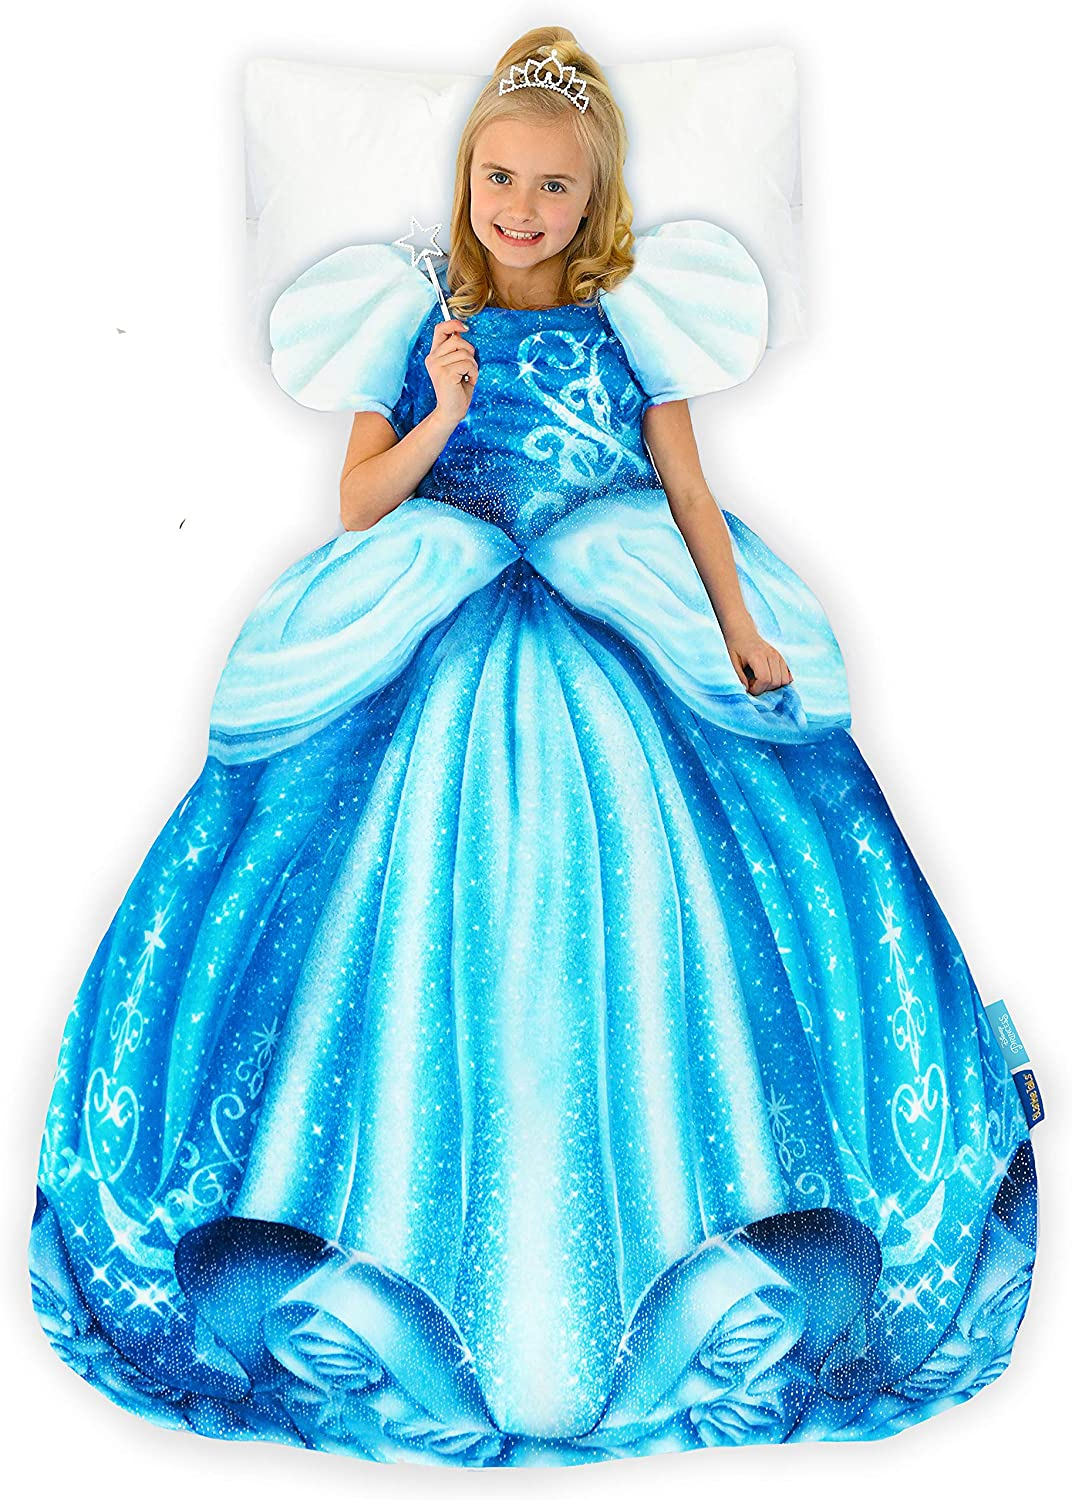 Blankie Tails Disney Beauty and The Beast Princess Belle Dress Wearable Blanket Super Soft-Double Sided Minky Fleece for Kids Climb Inside This Cozy Princess Dress Blanket